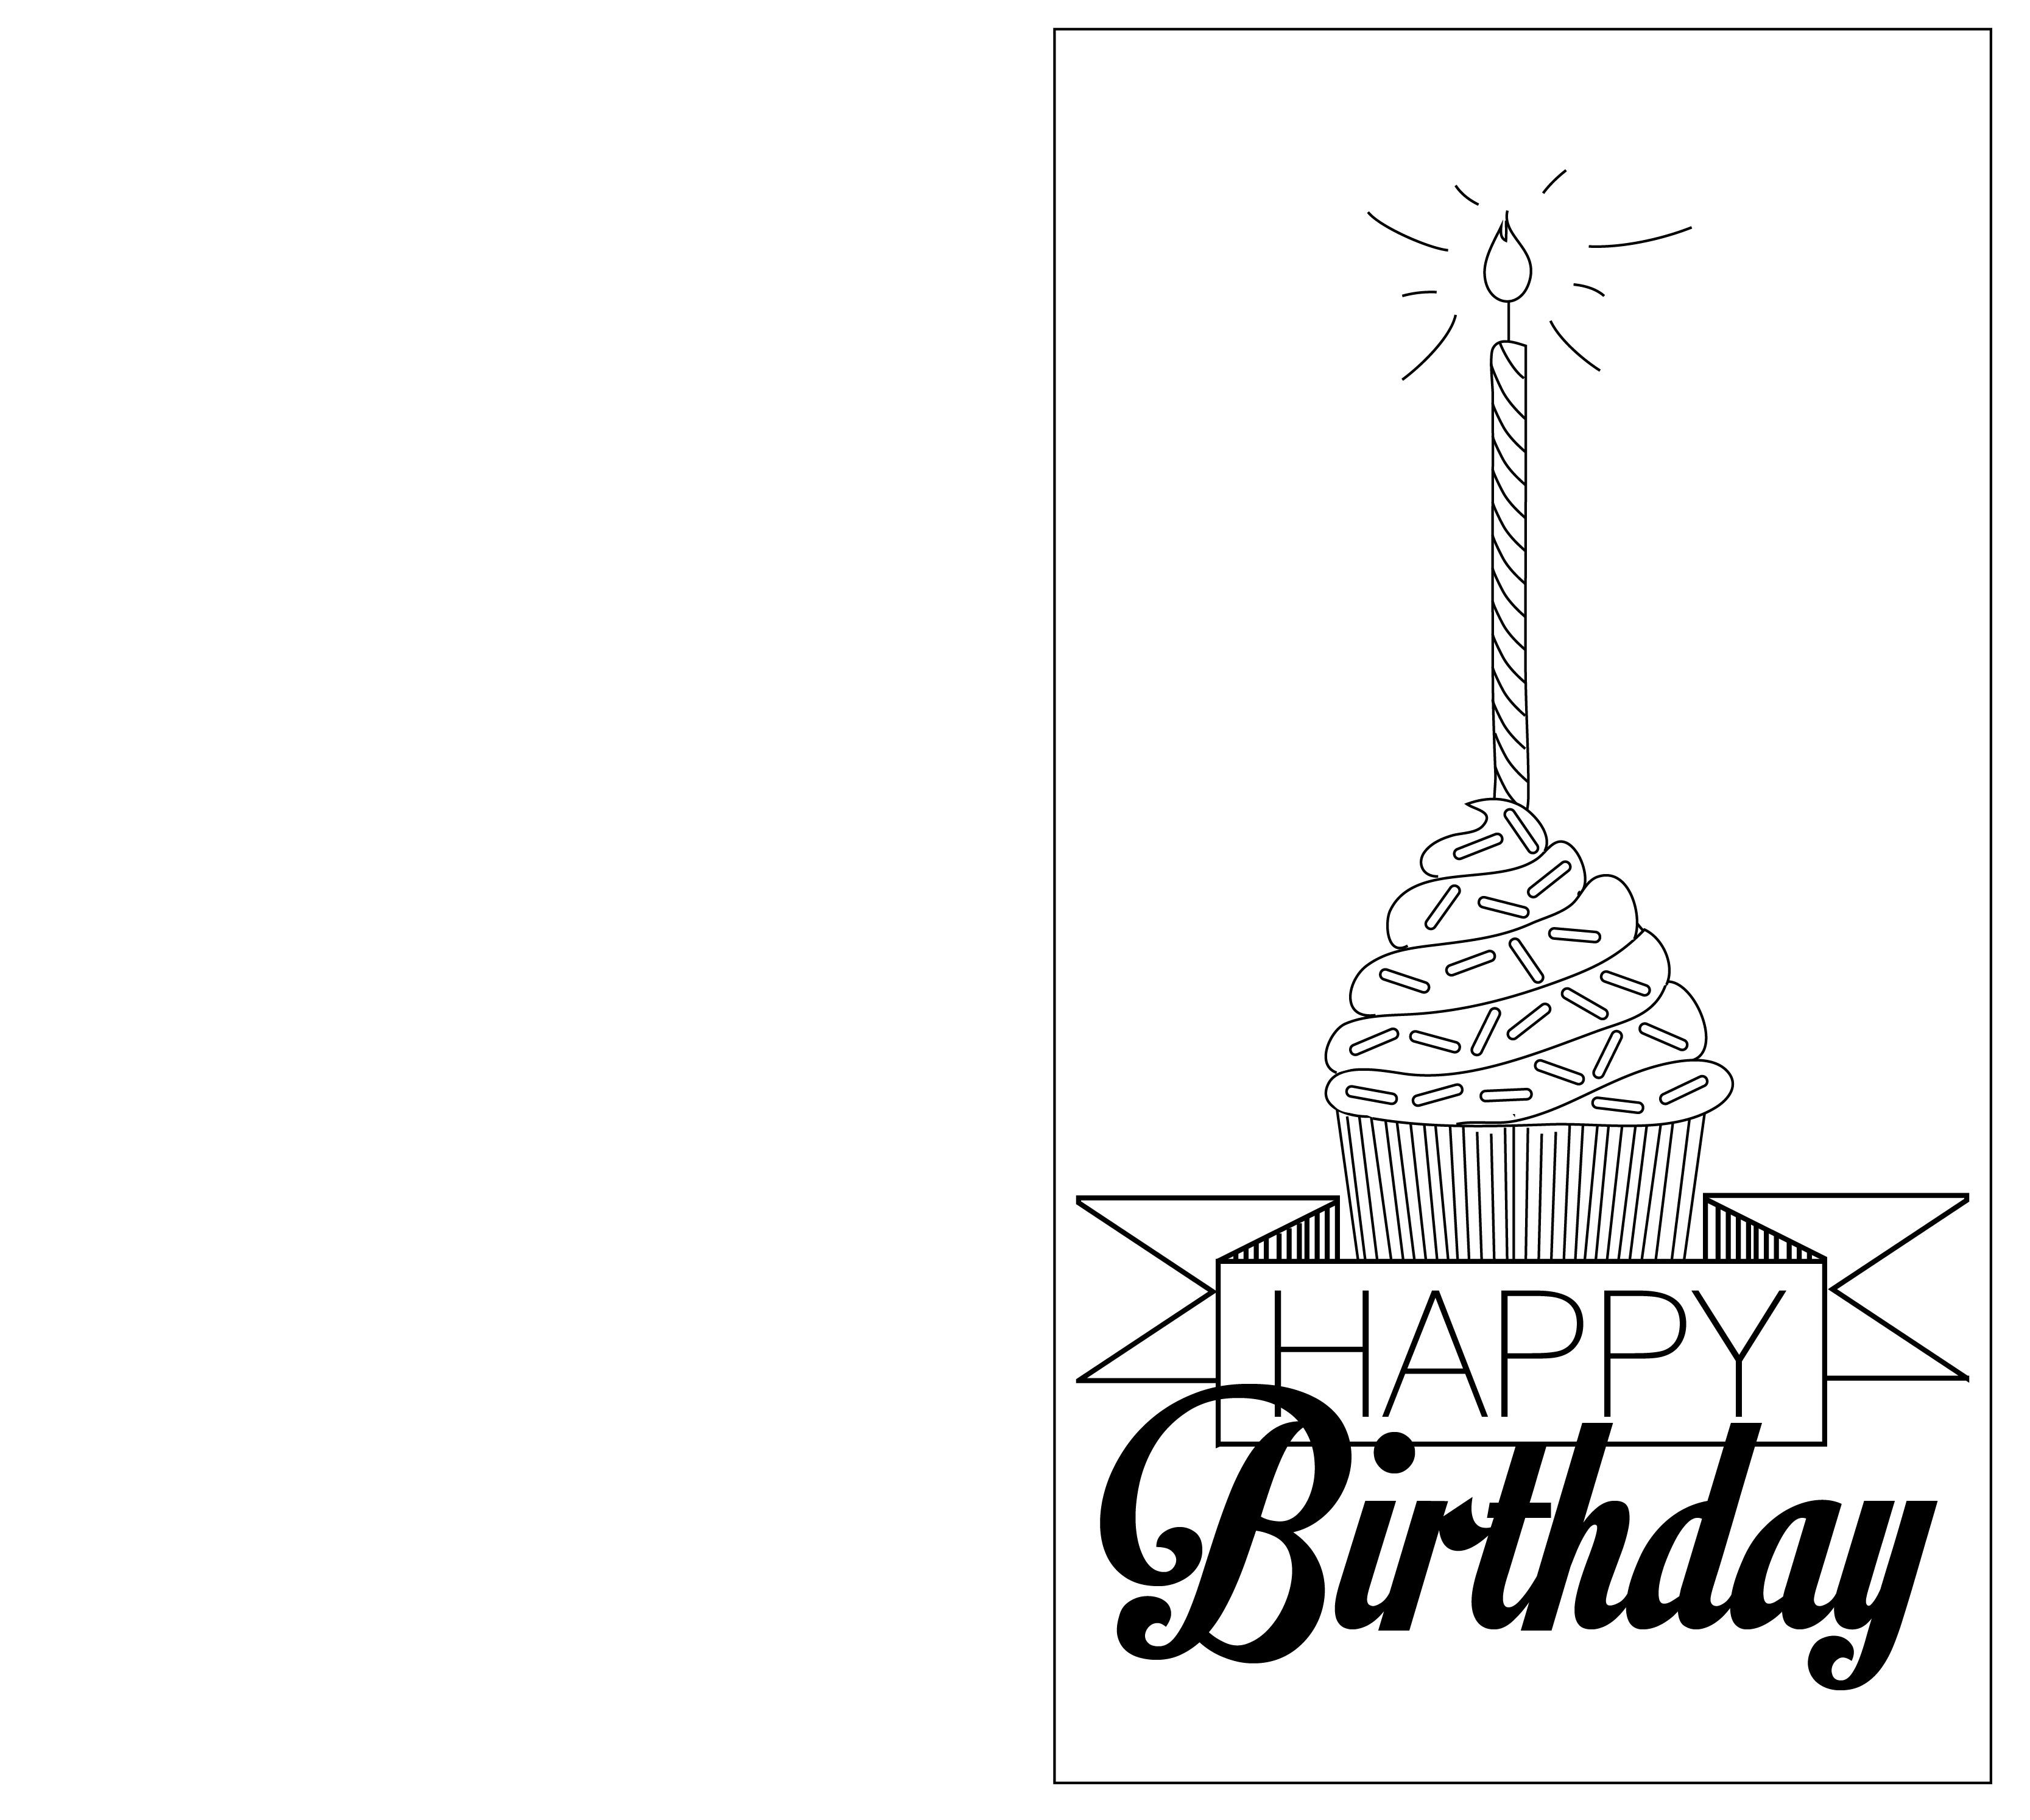 Print Out Black And White Birthday Cards – Birthday Cards to Print out for Free